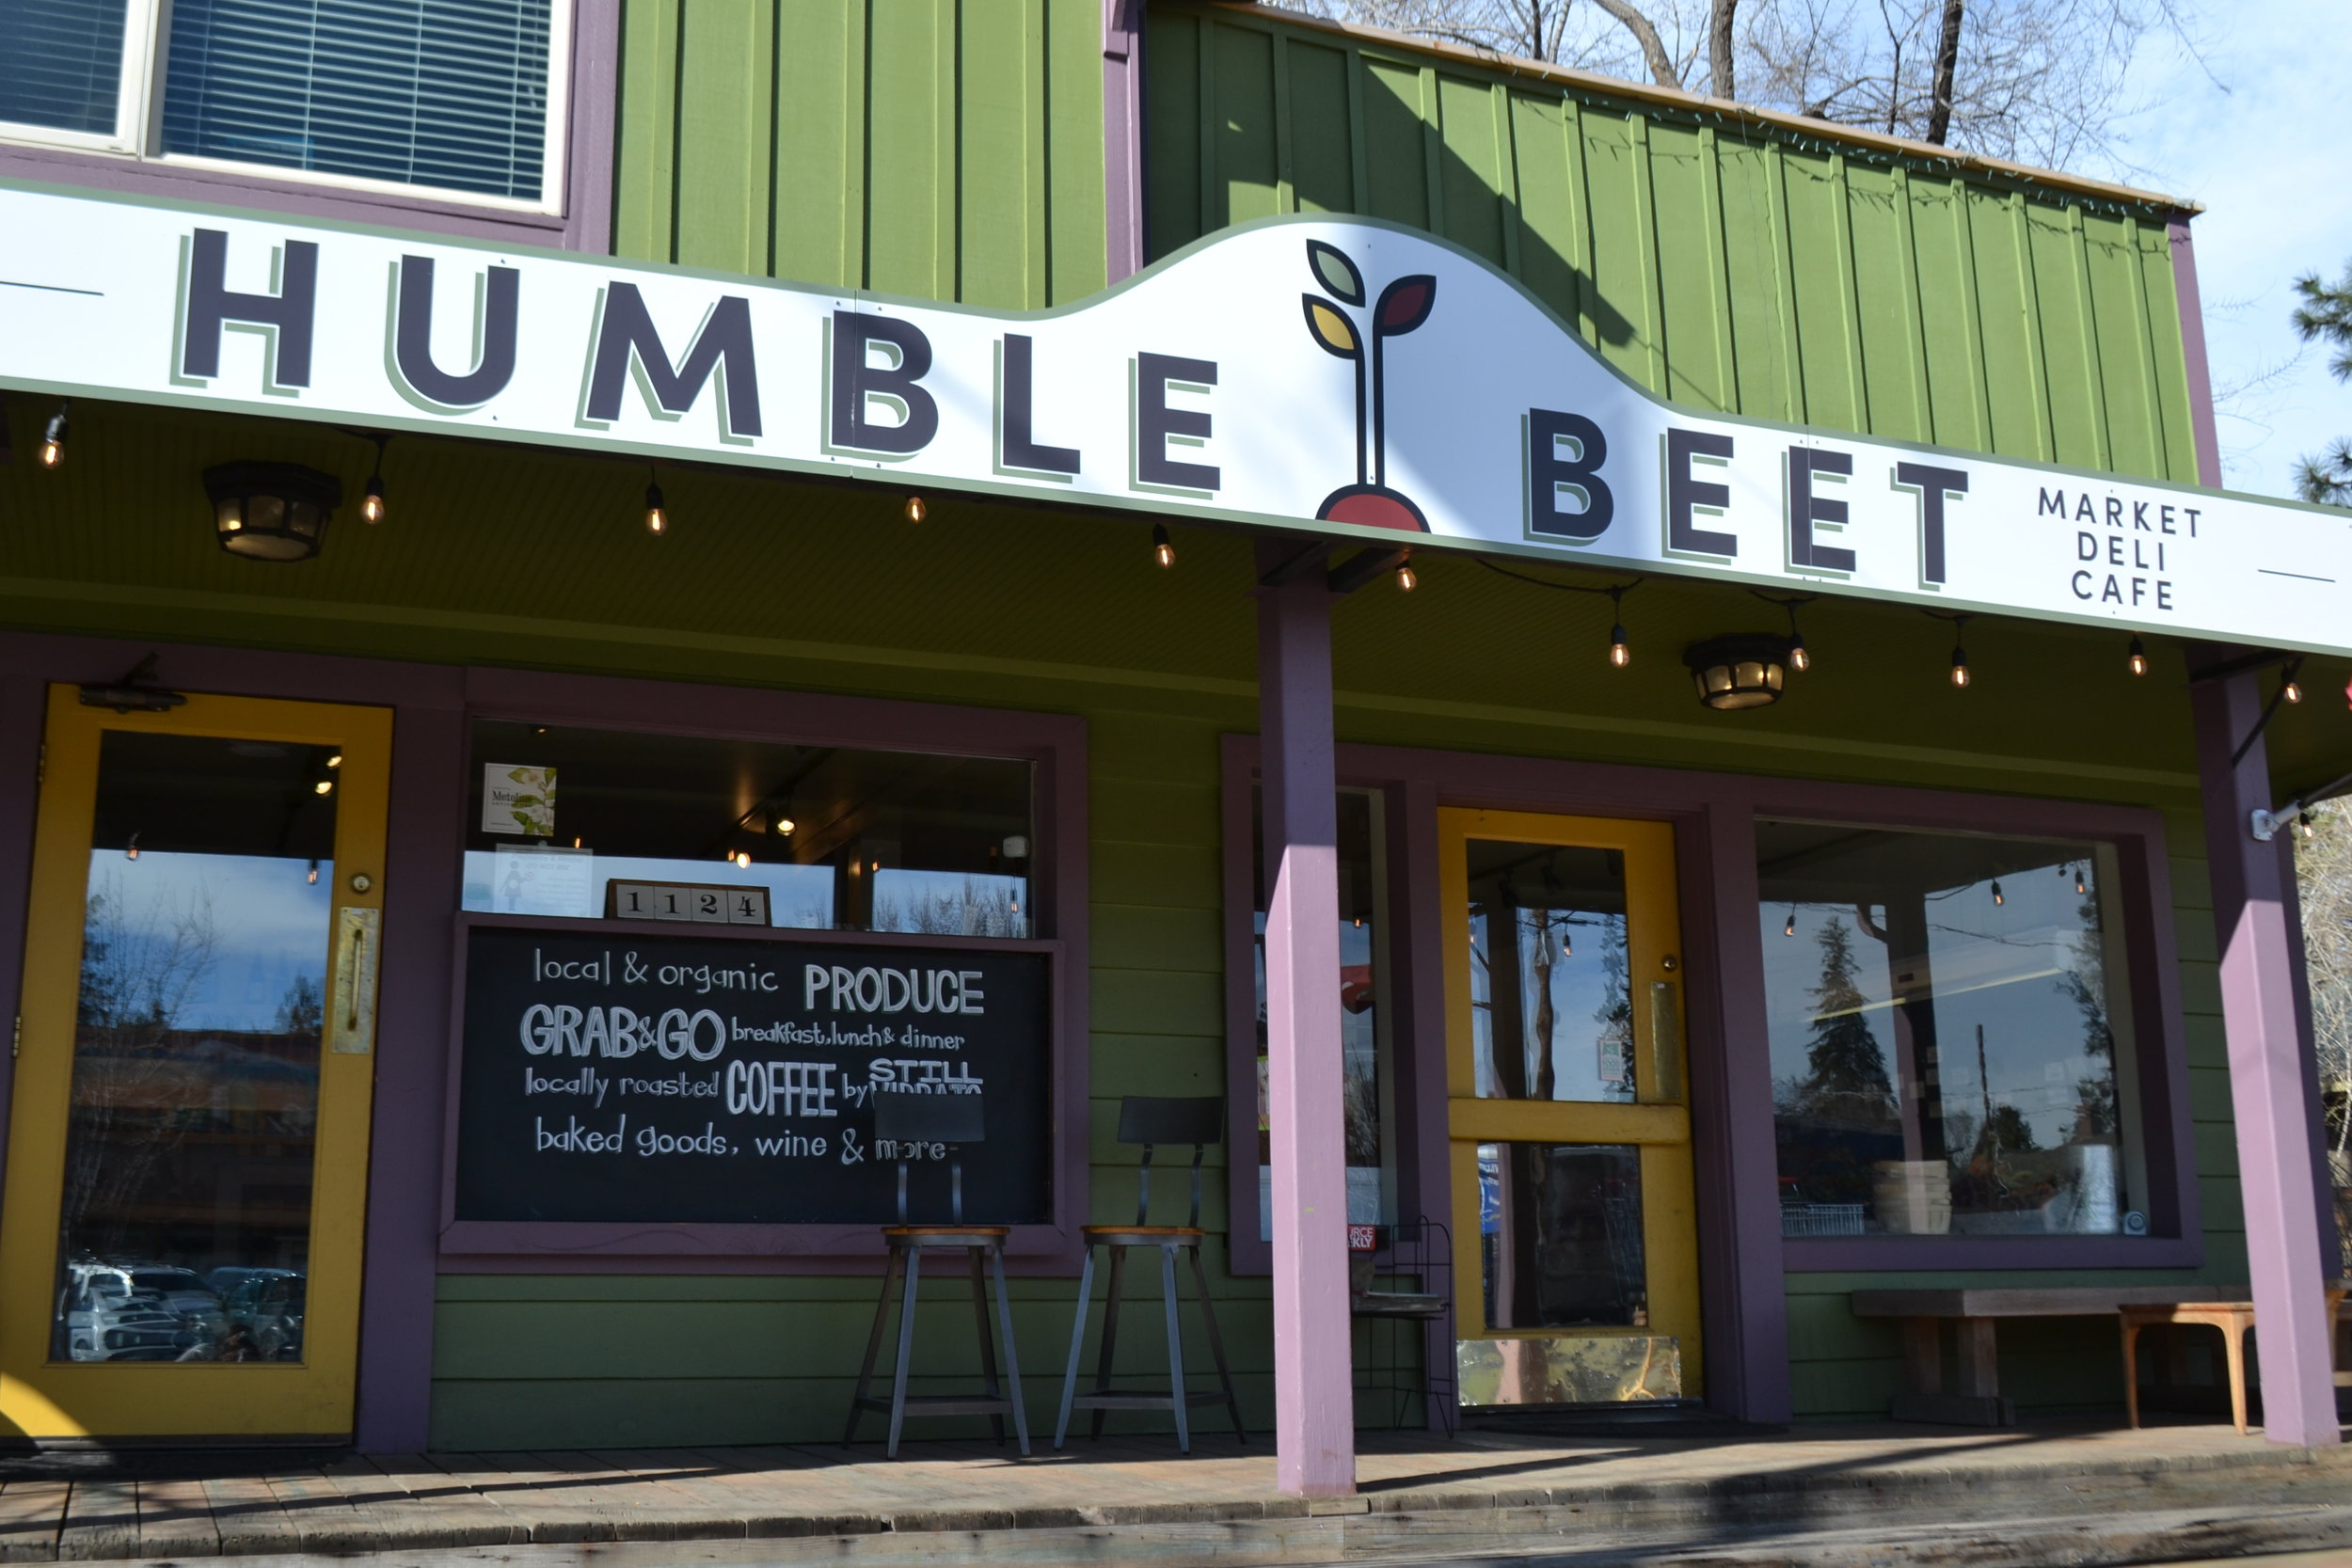 The Humble Beet - Newport Ave., Bend, ORFirst Official BYOC Bend Supporting Business since March 2019BYOC 10 times and the 11th drink is freeThe Humble Beet is the first Official Supporting Businesses. It is one of the most unique coffee shops in Bend because it also acts as a local market and deli for its surrounding community. All drinks are served in a glass cup with a deposit which can be returned, unwashed, with a refund on the deposit. It's not necessary for a businesses to change the cups they serve but the Humble Beet's efforts have been recognized and it is why they will serve as the ideal model and goal for other businesses to be inspired by.